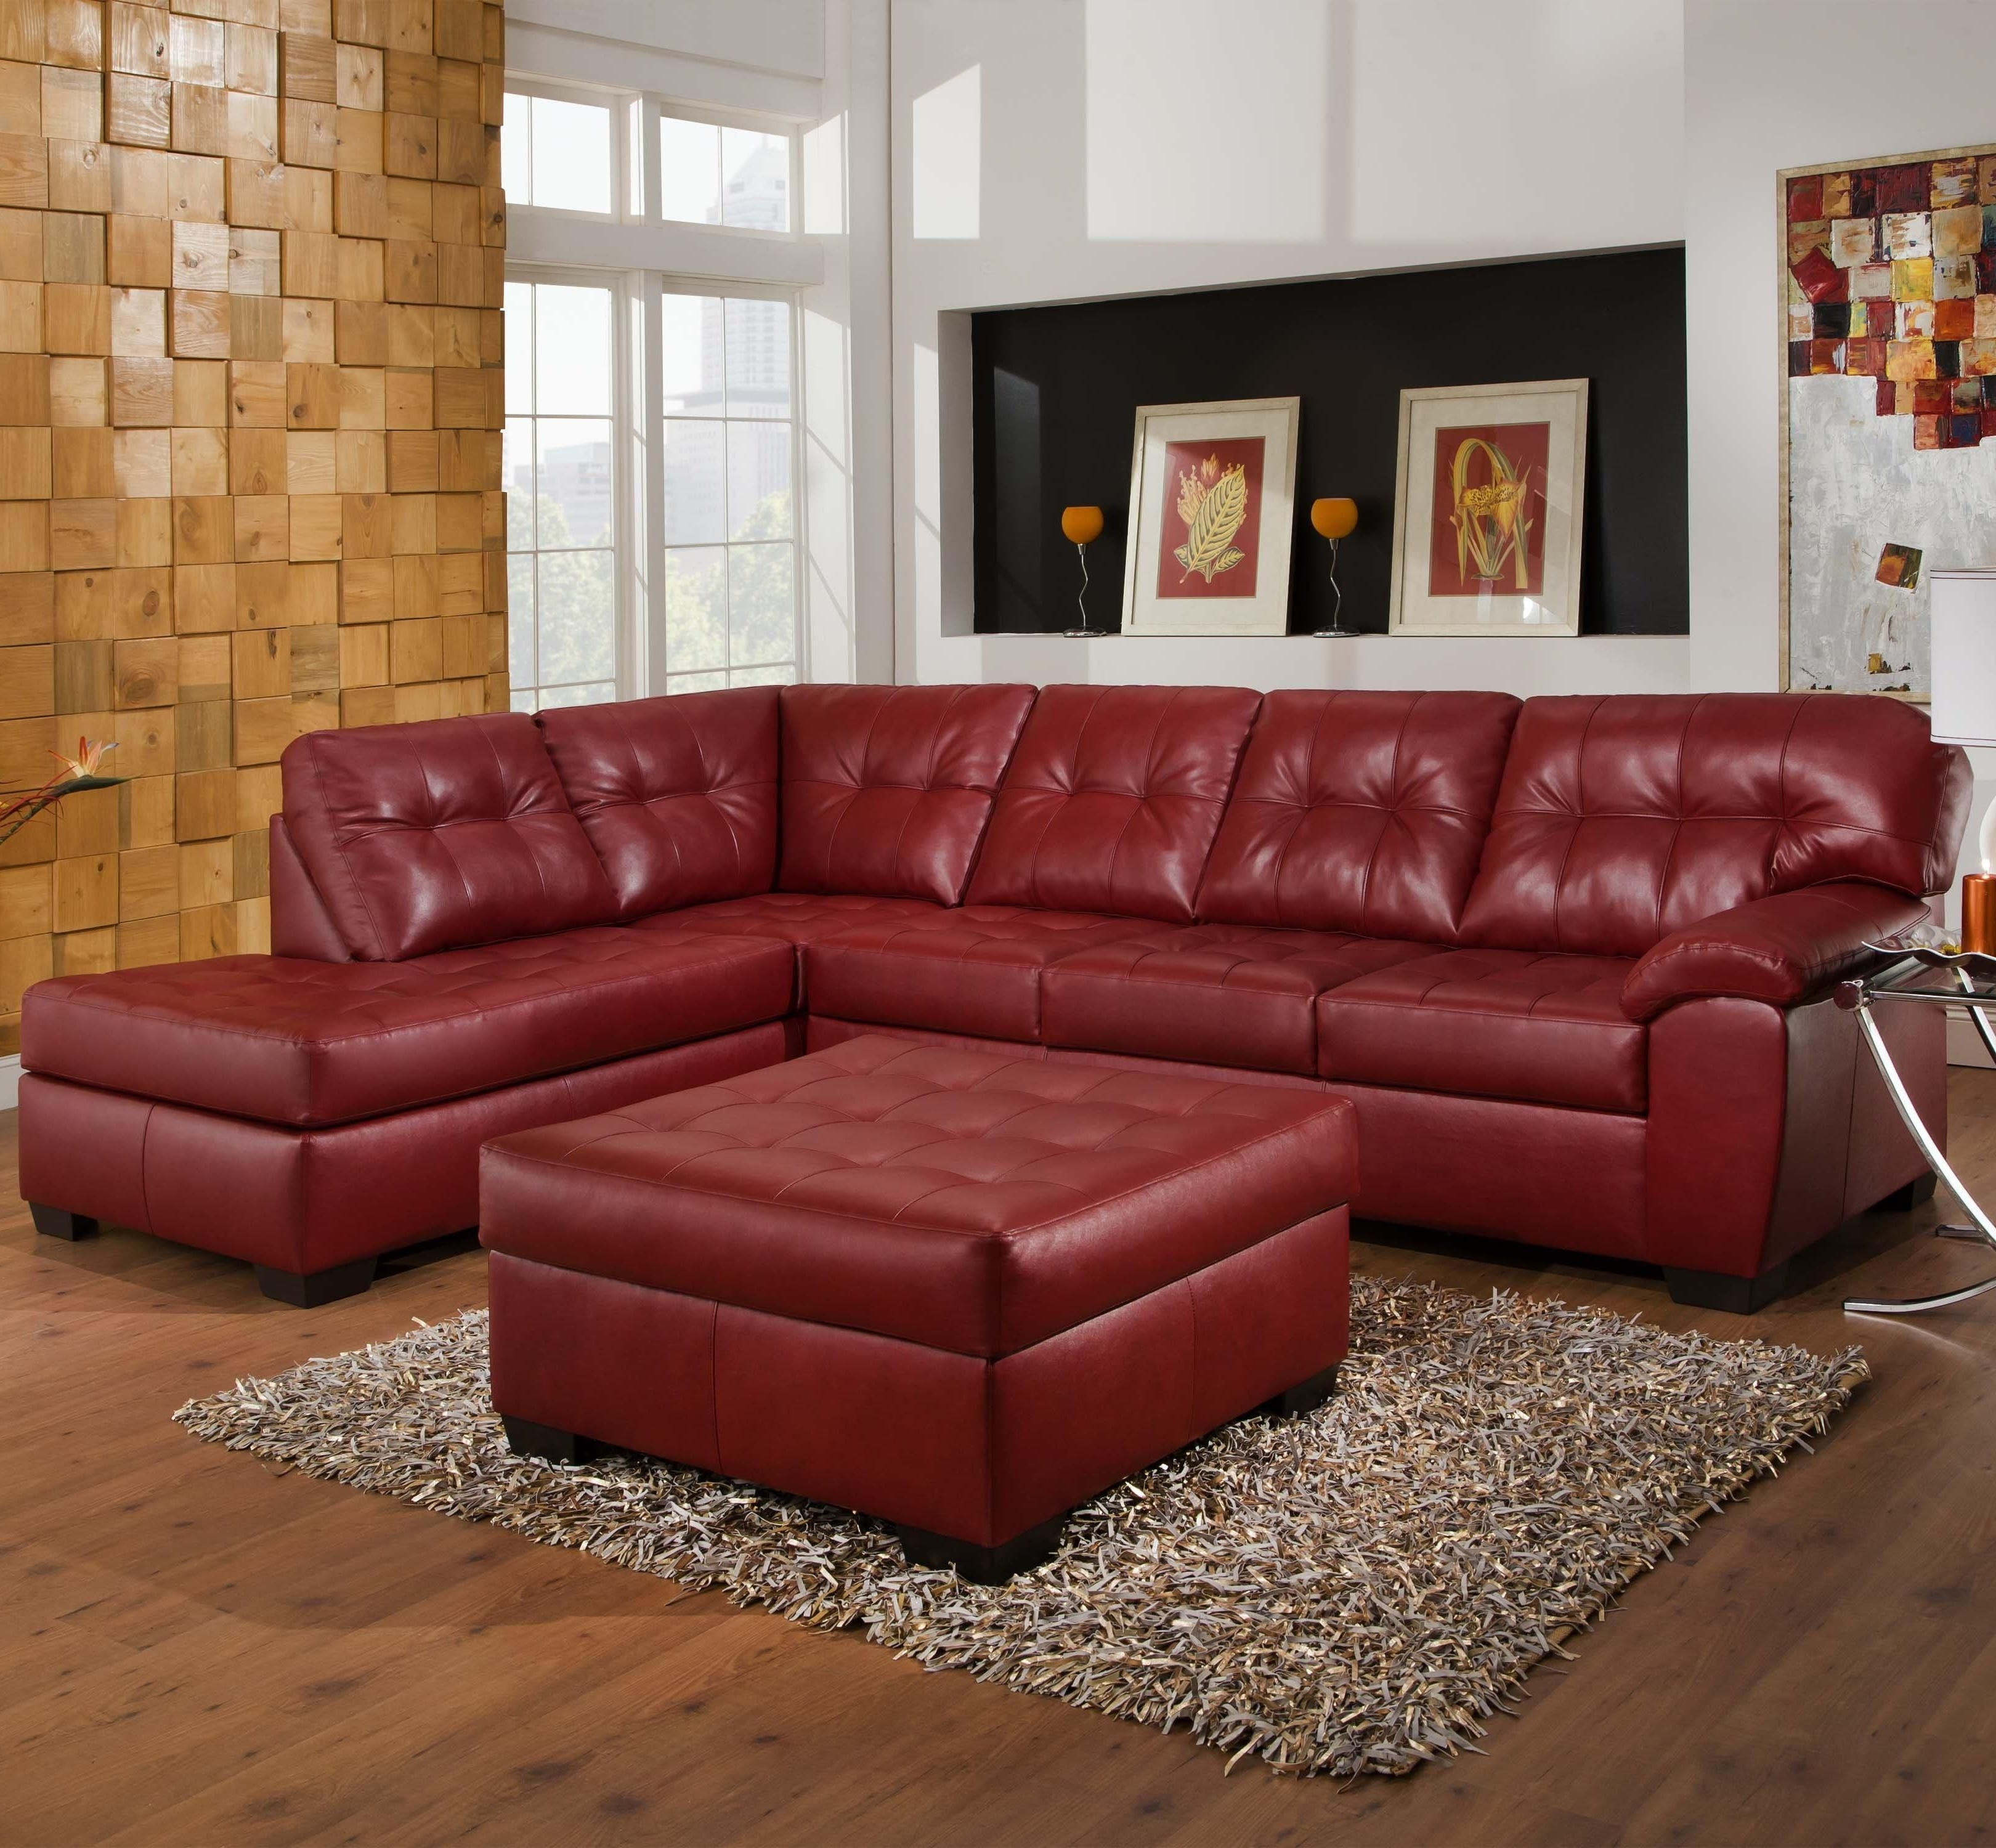 Ivan Smith Sectional Sofas Throughout Widely Used 9569 2 Piece Sectional With Tufted Seats & Backsimmons (View 8 of 20)